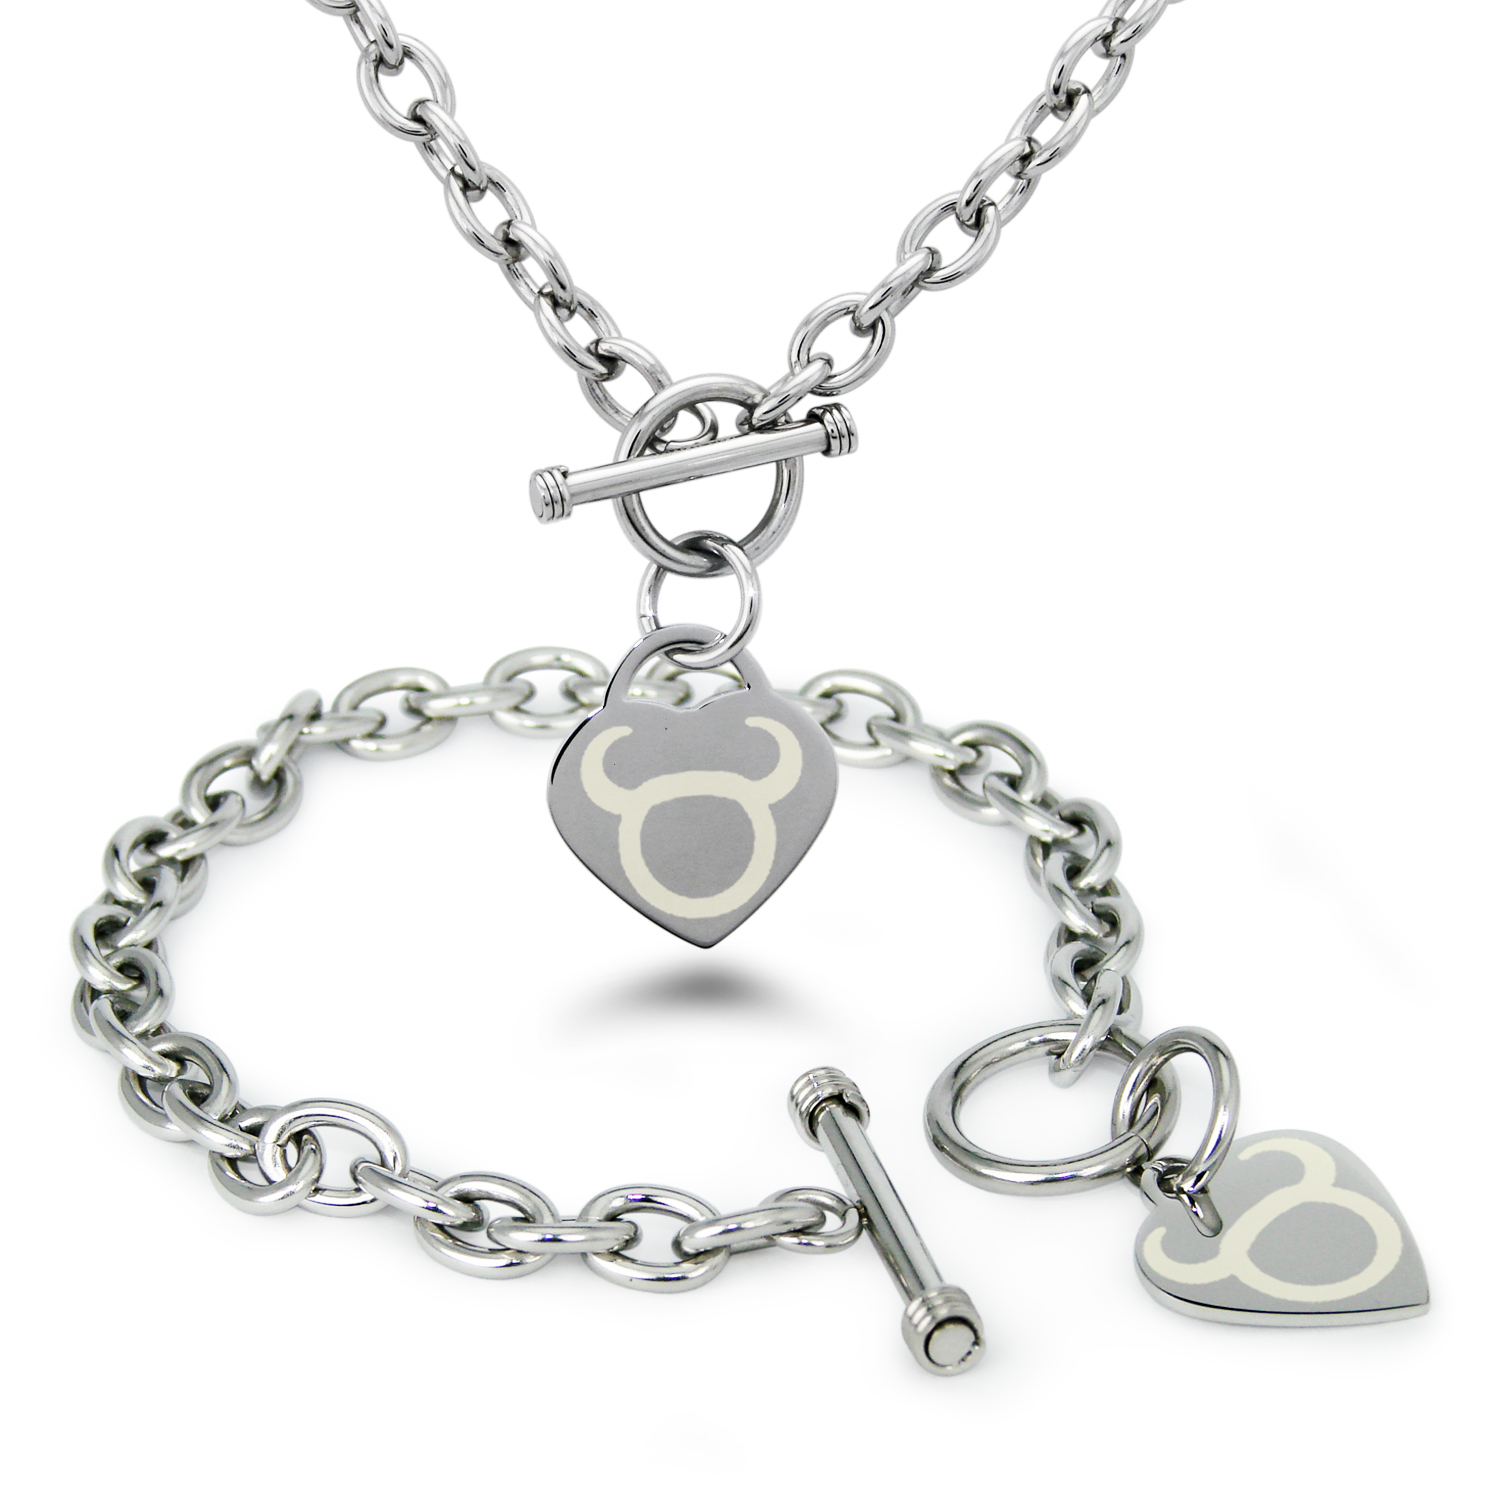 Stainless Steel Taurus Astrology Symbol Heart Charm Toggle Bracelet & Necklace